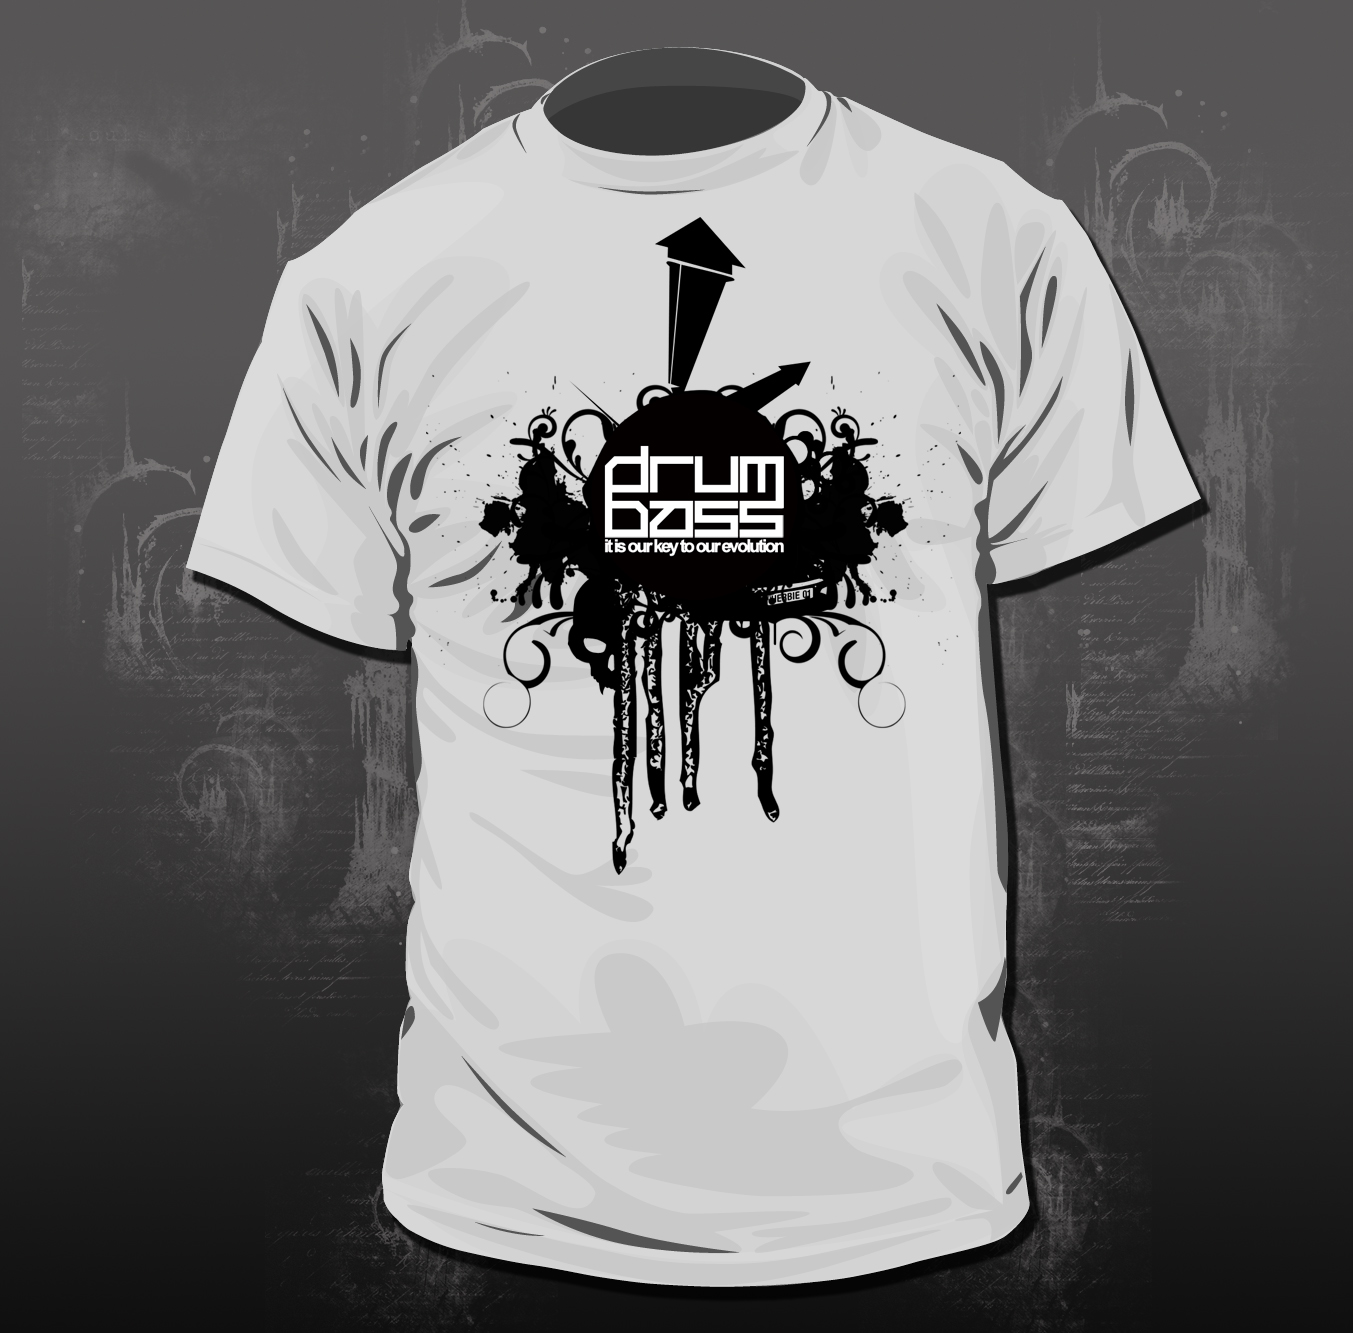 Design t shirt online - Websites To Design Shirts